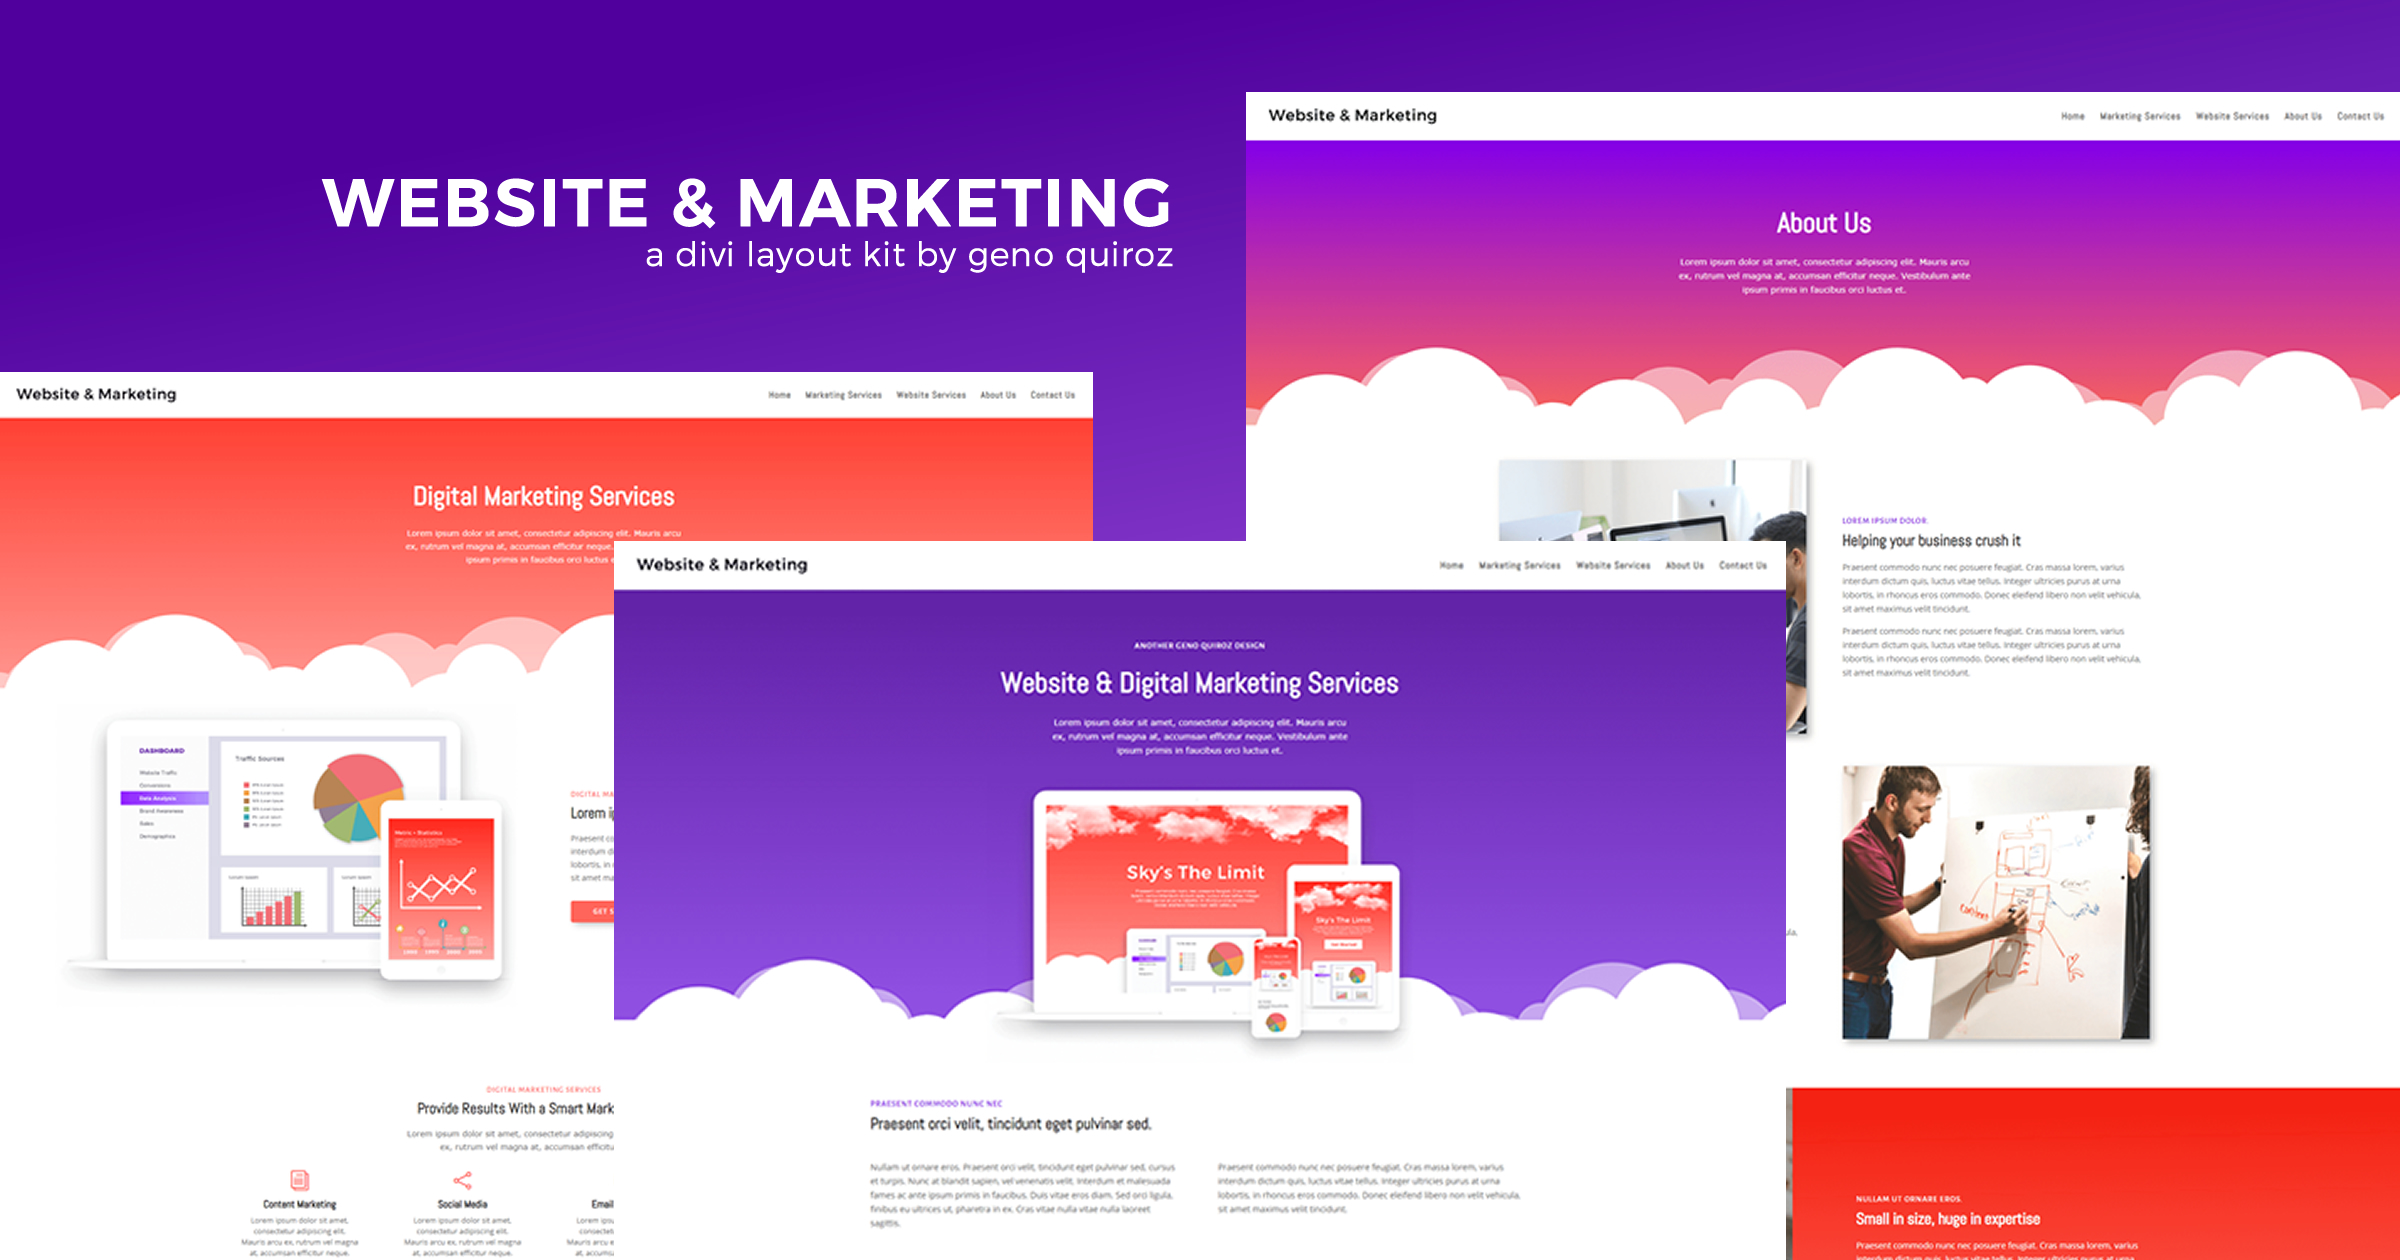 Get a FREE Website & Marketing Agency Layout Pack for Divi by Geno Quiroz